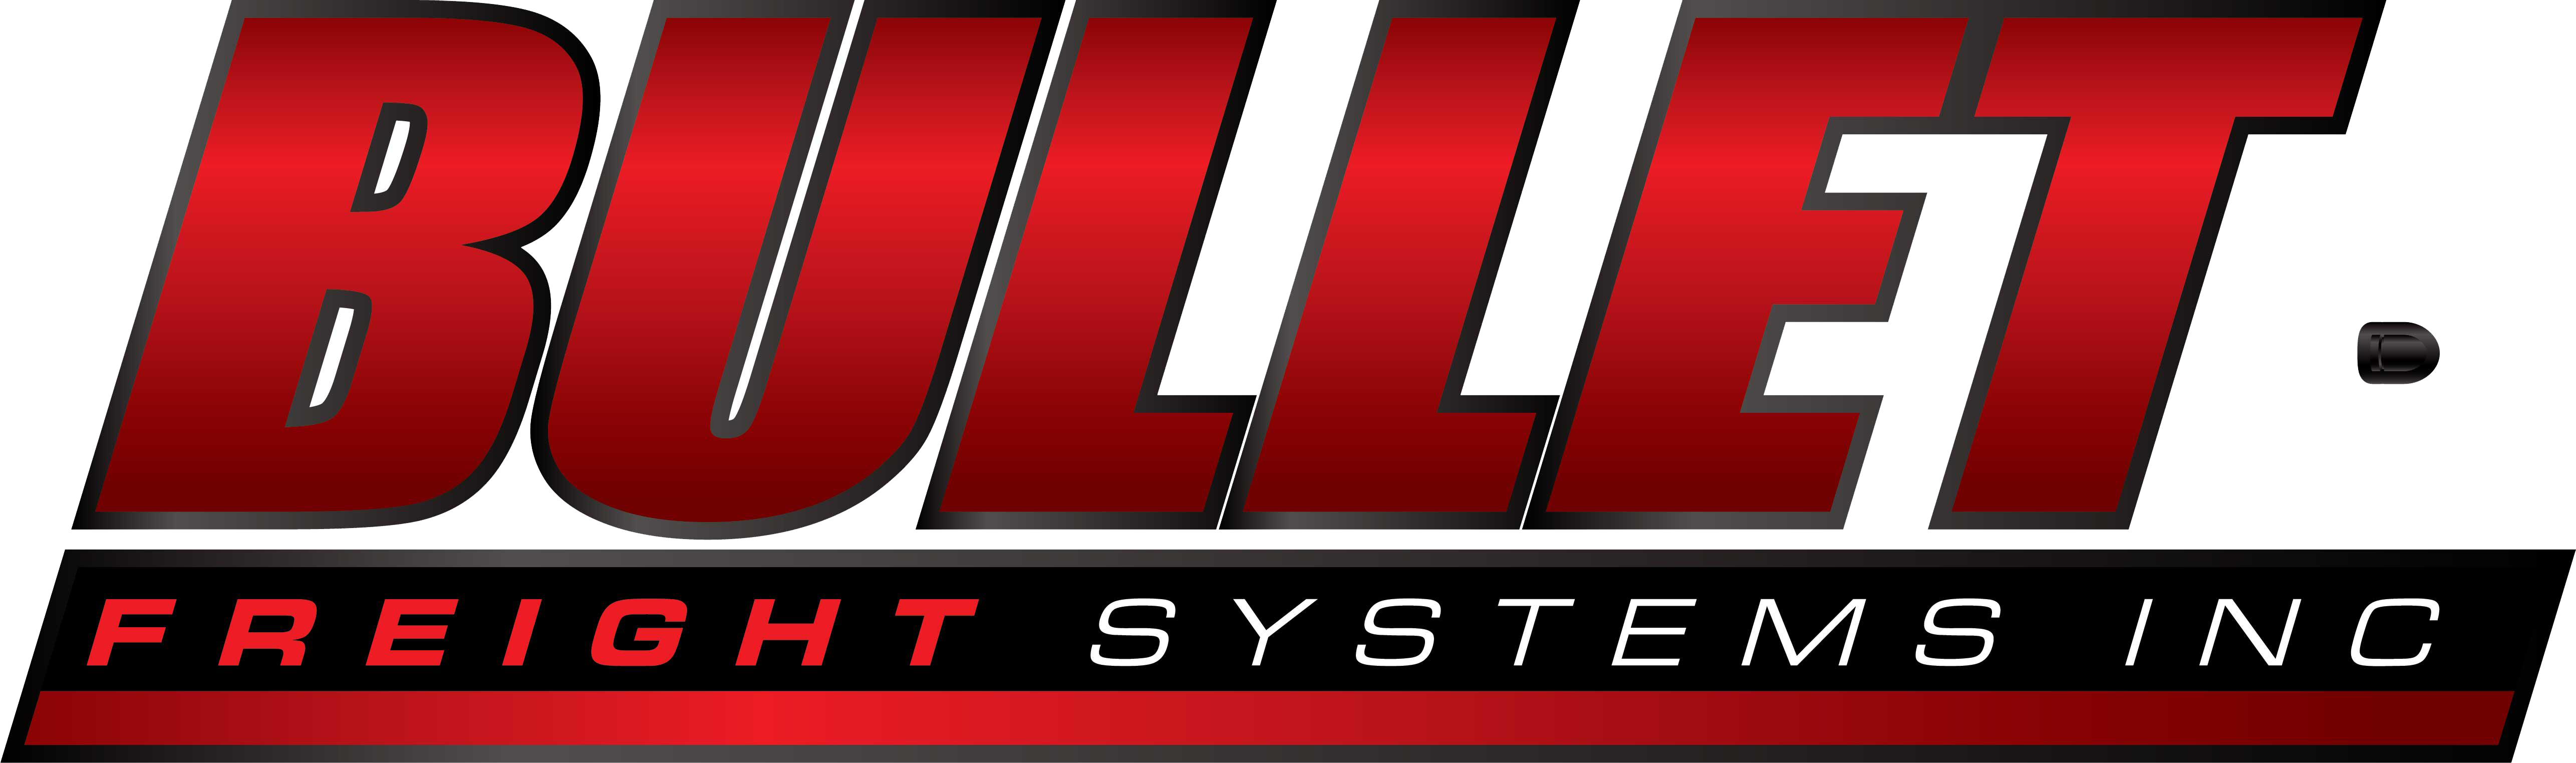 Best of Doral™ Travel and Freight Services presents Bullet Freight Systems.